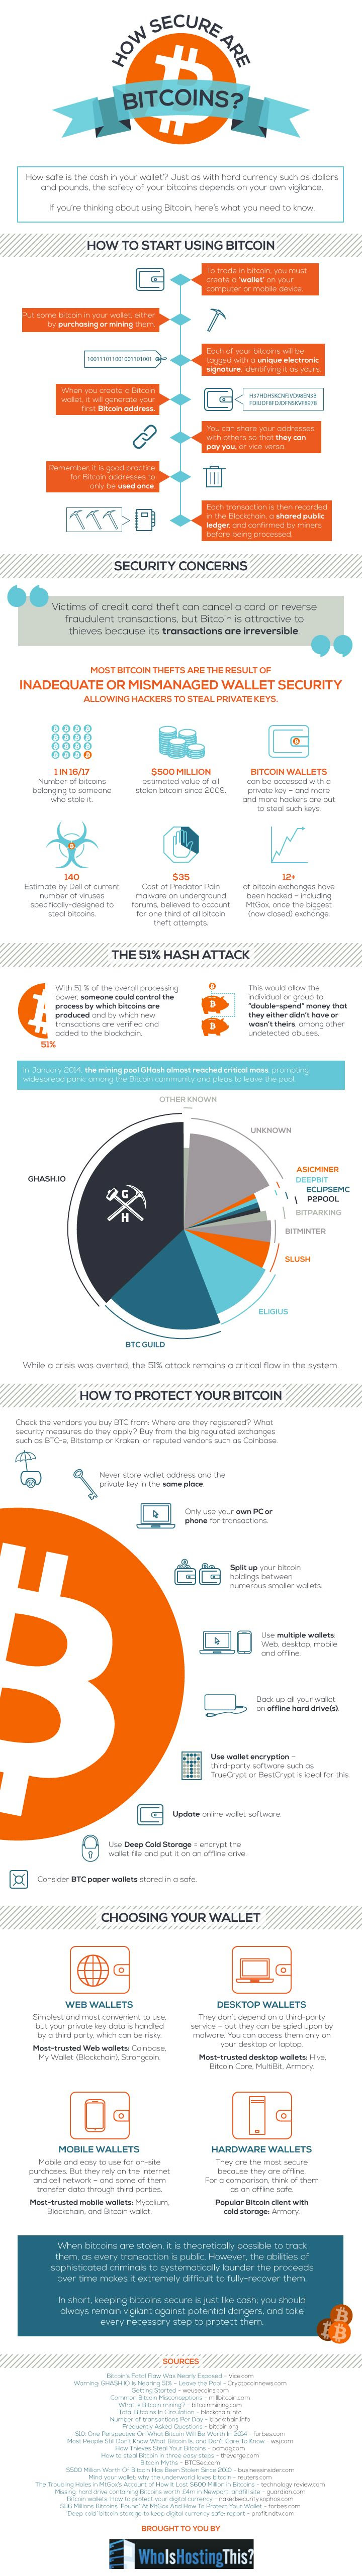 Infographic: How Secure are Bitcoins? #infographic